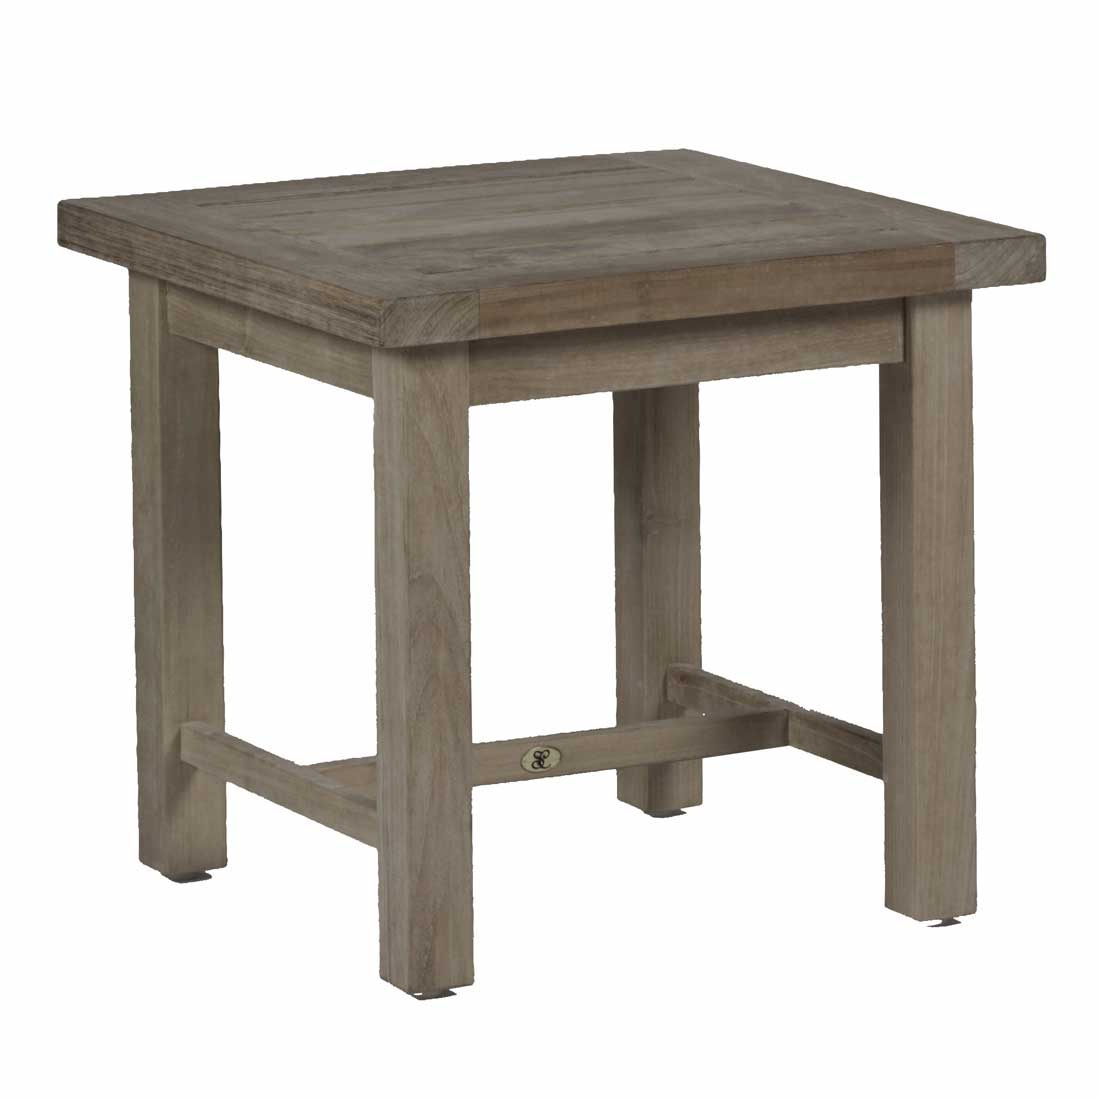 Club teak end table outdoor end table for Teak side table outdoor